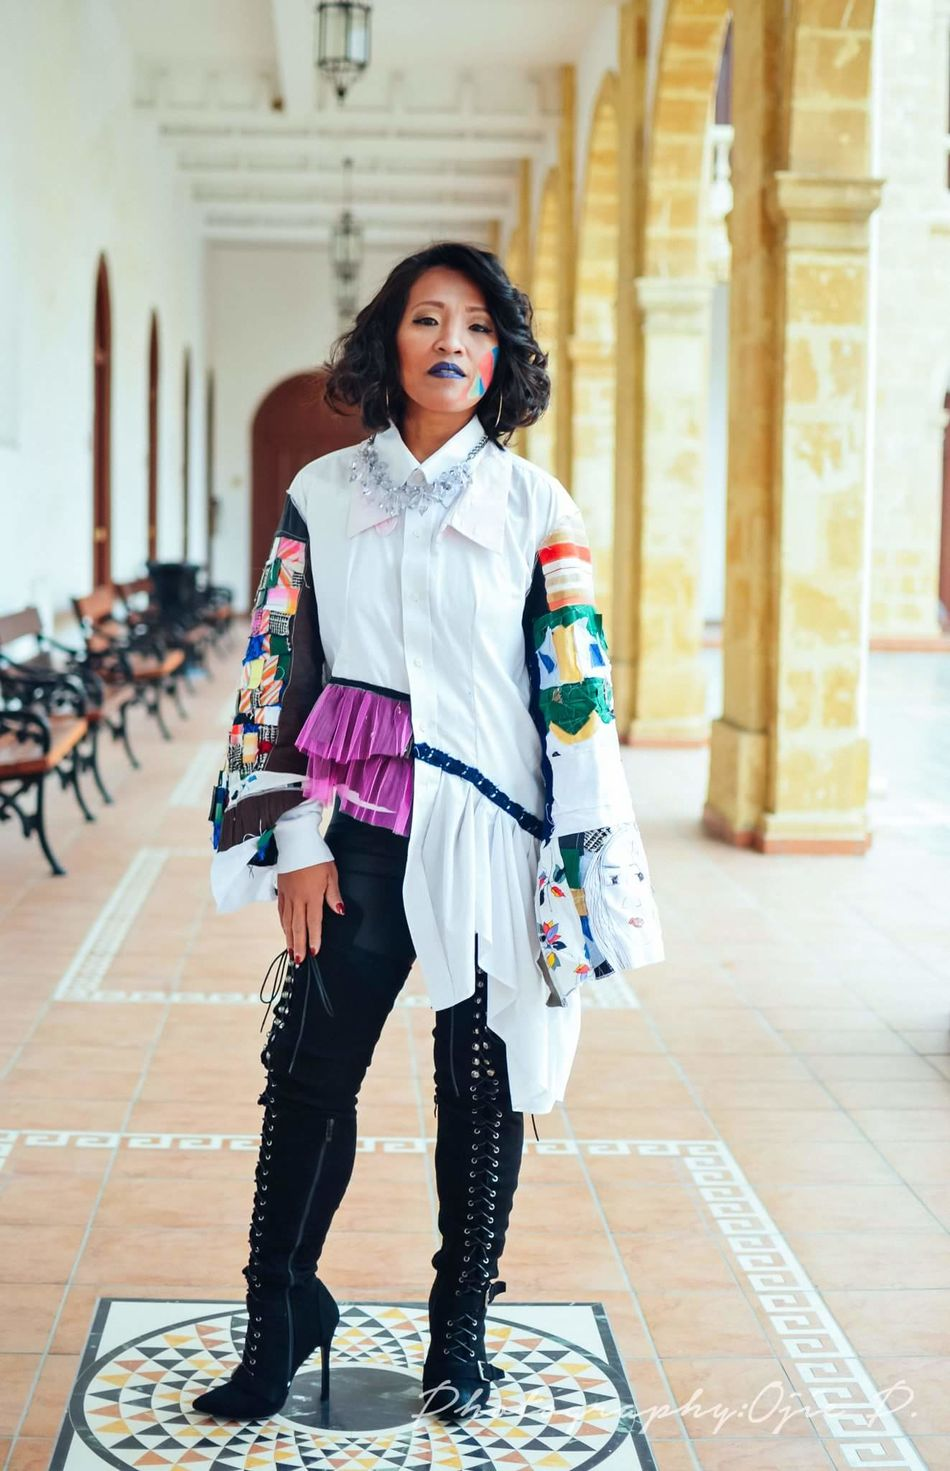 My Model in Upcycling Design Clothes Filipina Portrait Of A Woman Cyprus